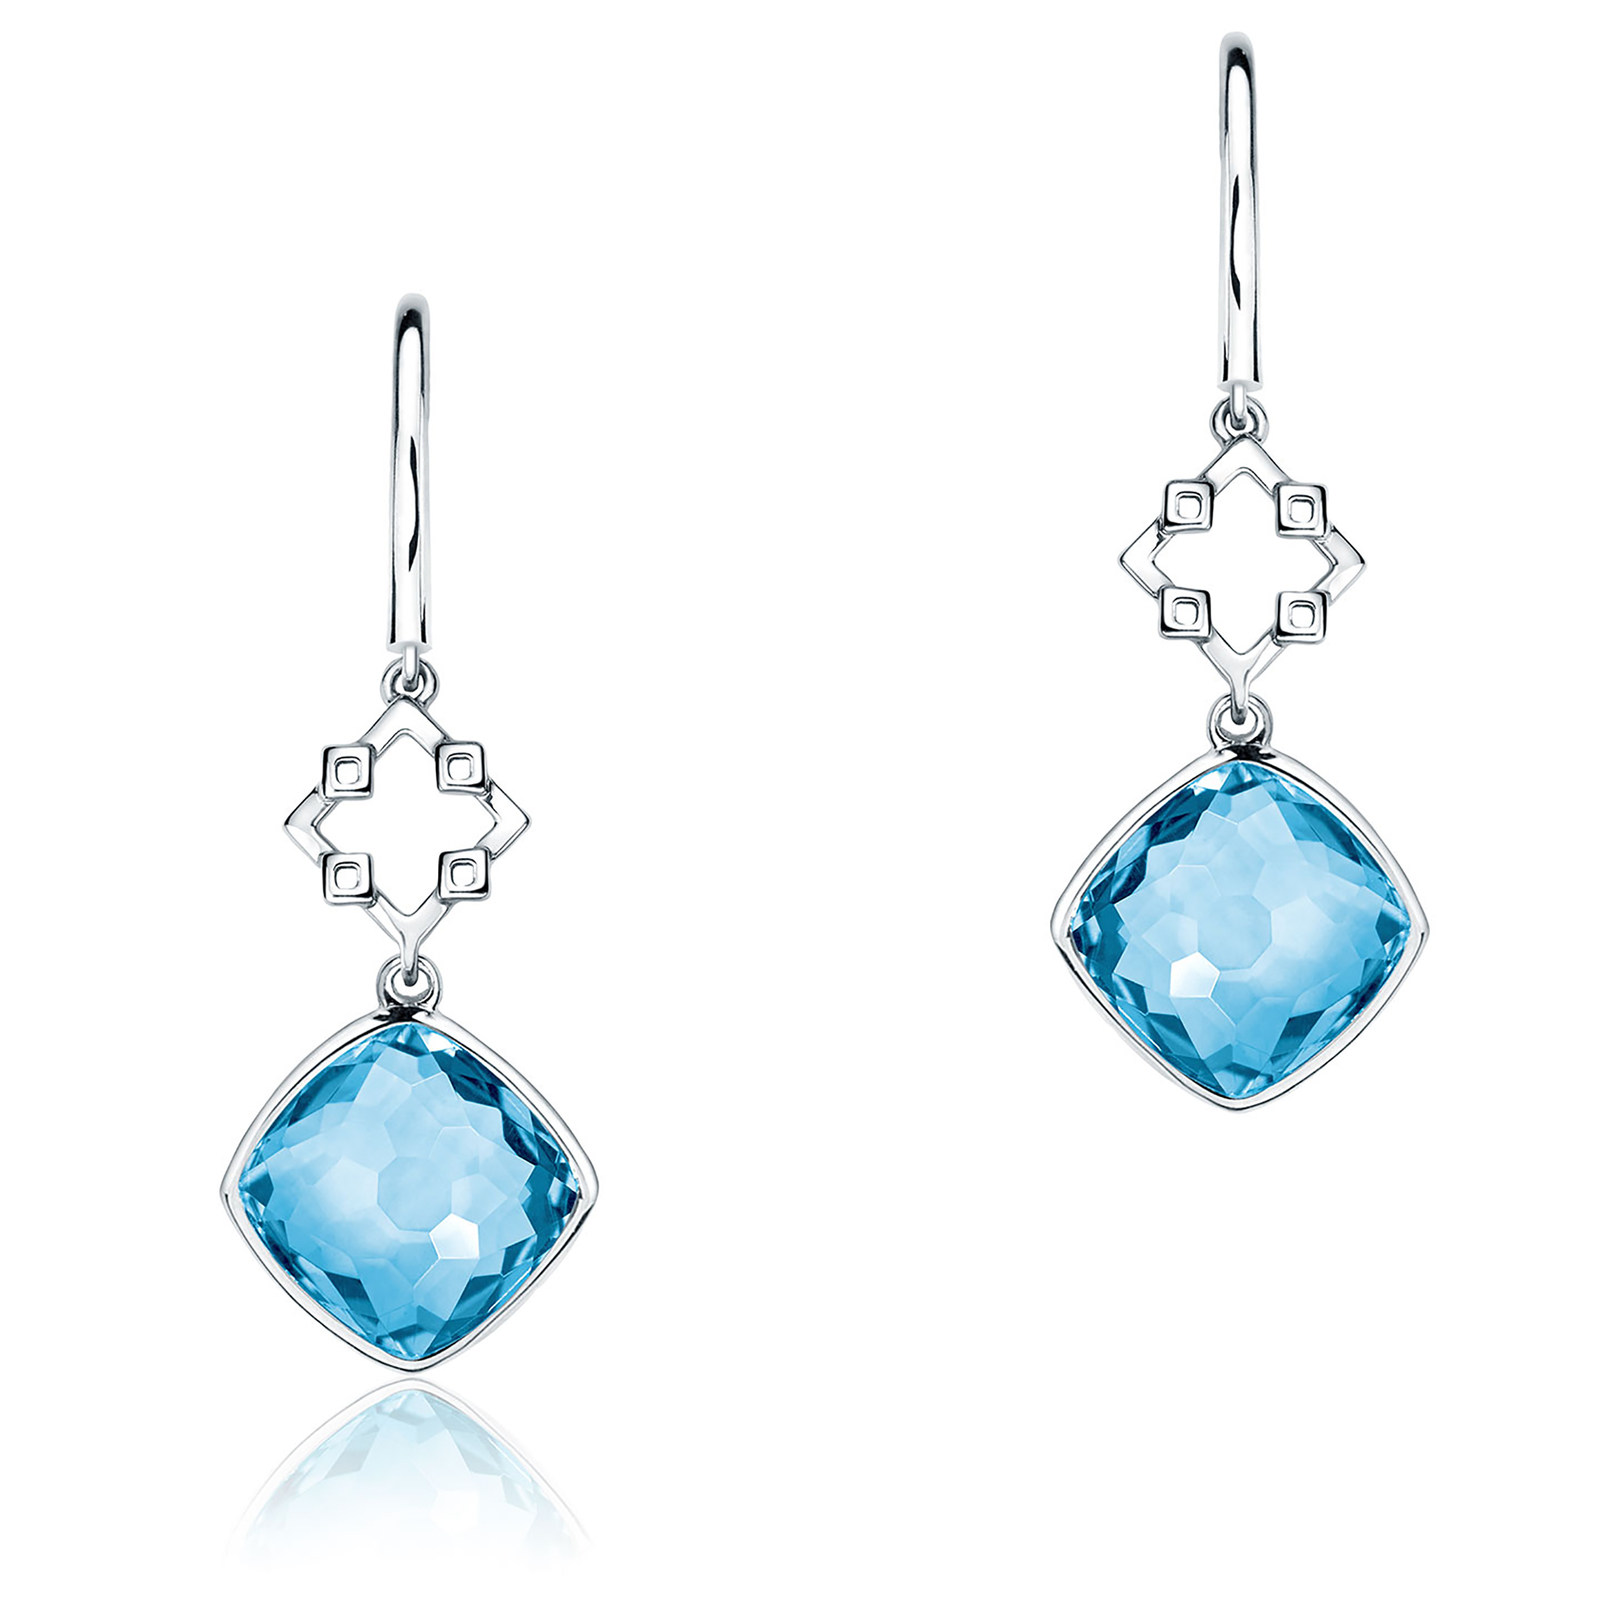 Birks Muse Blue Topaz Drop Earrings